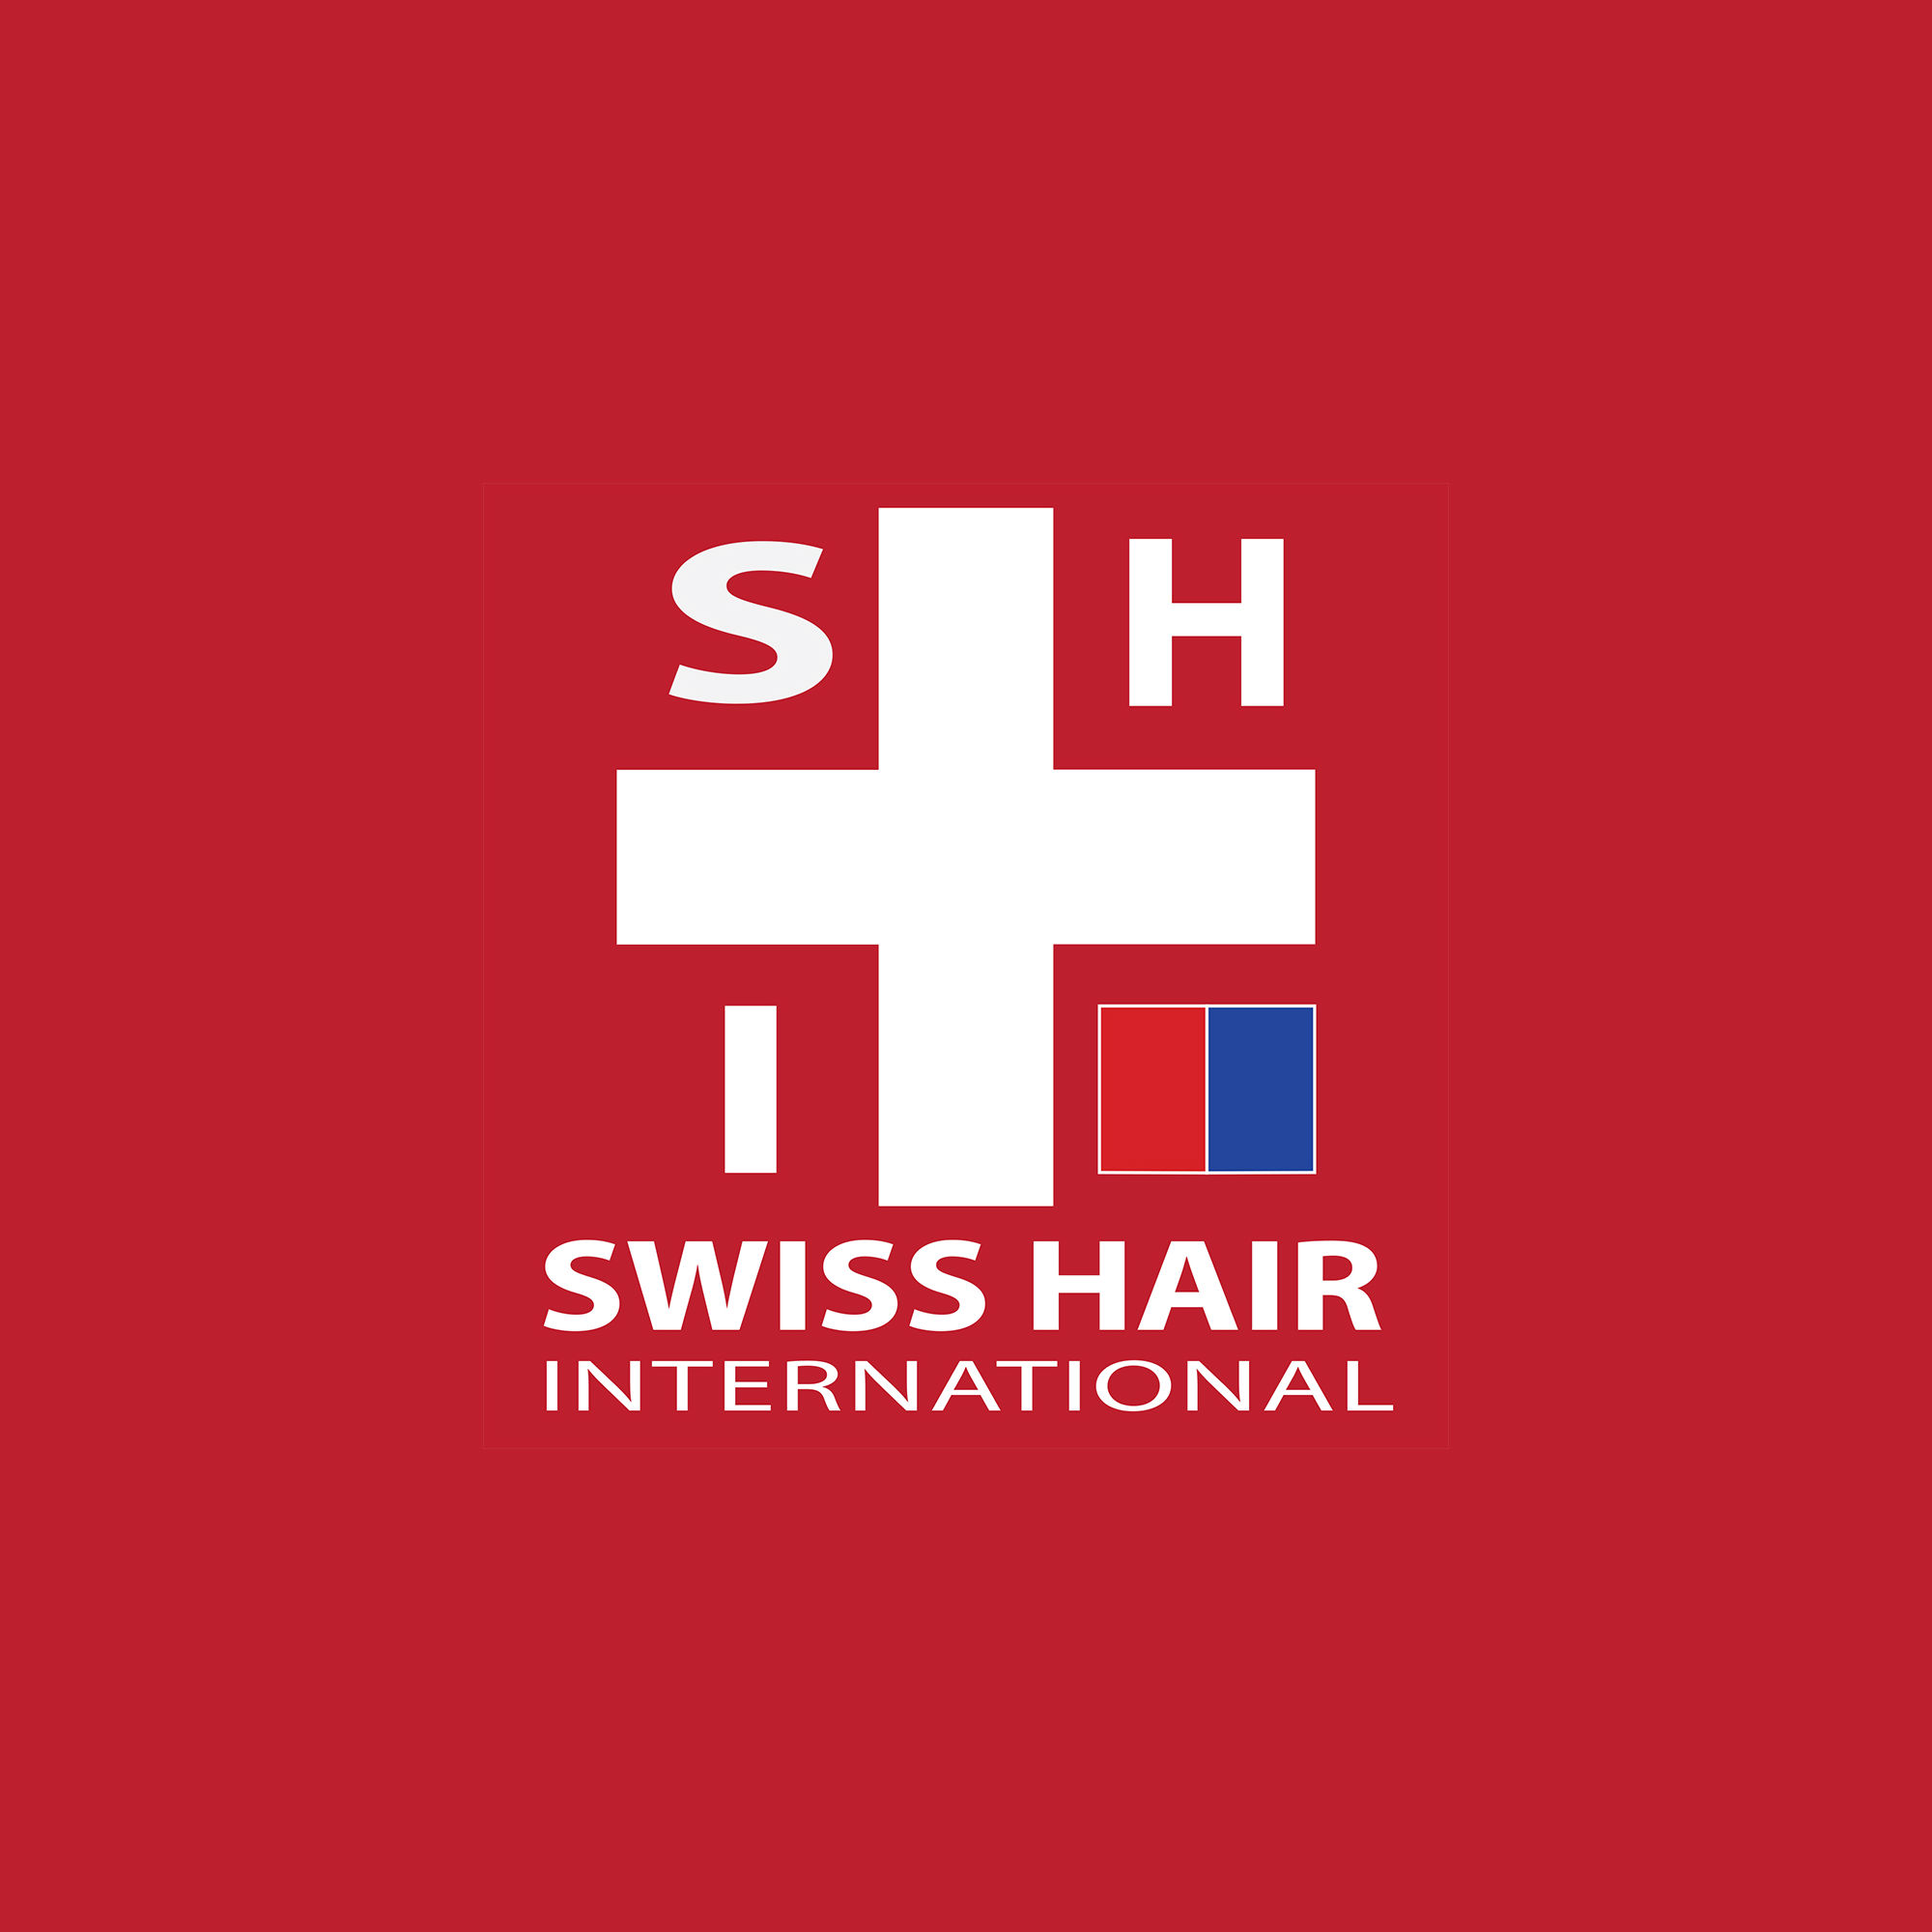 weBranding realizes the logo for Swiss Hair International